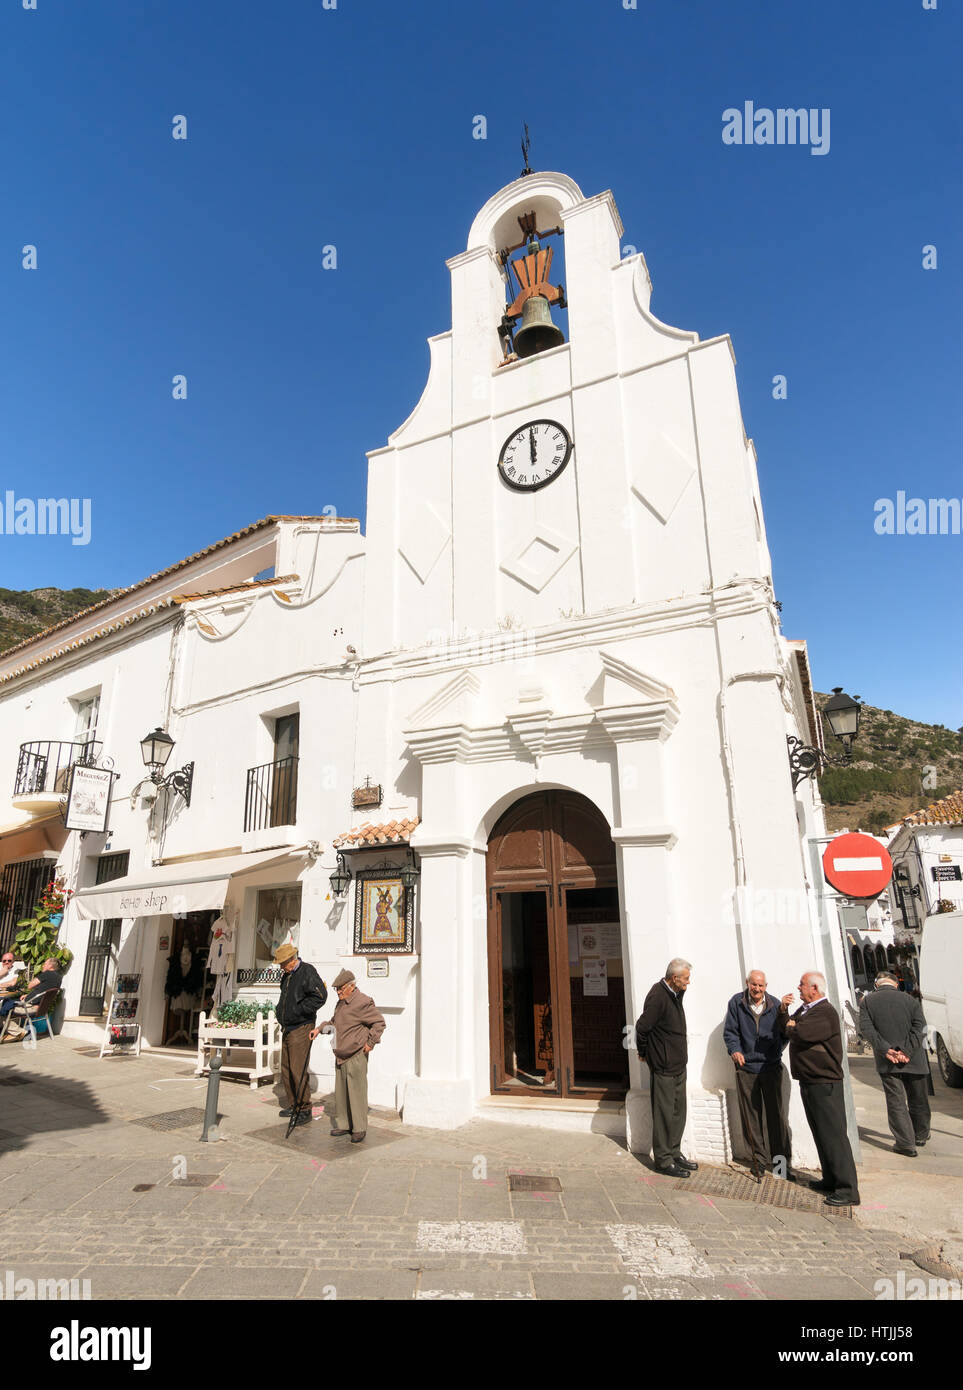 A group of older local men outside the church of San Sebastian, Mijas, Andalusia, Spain, Europe - Stock Image